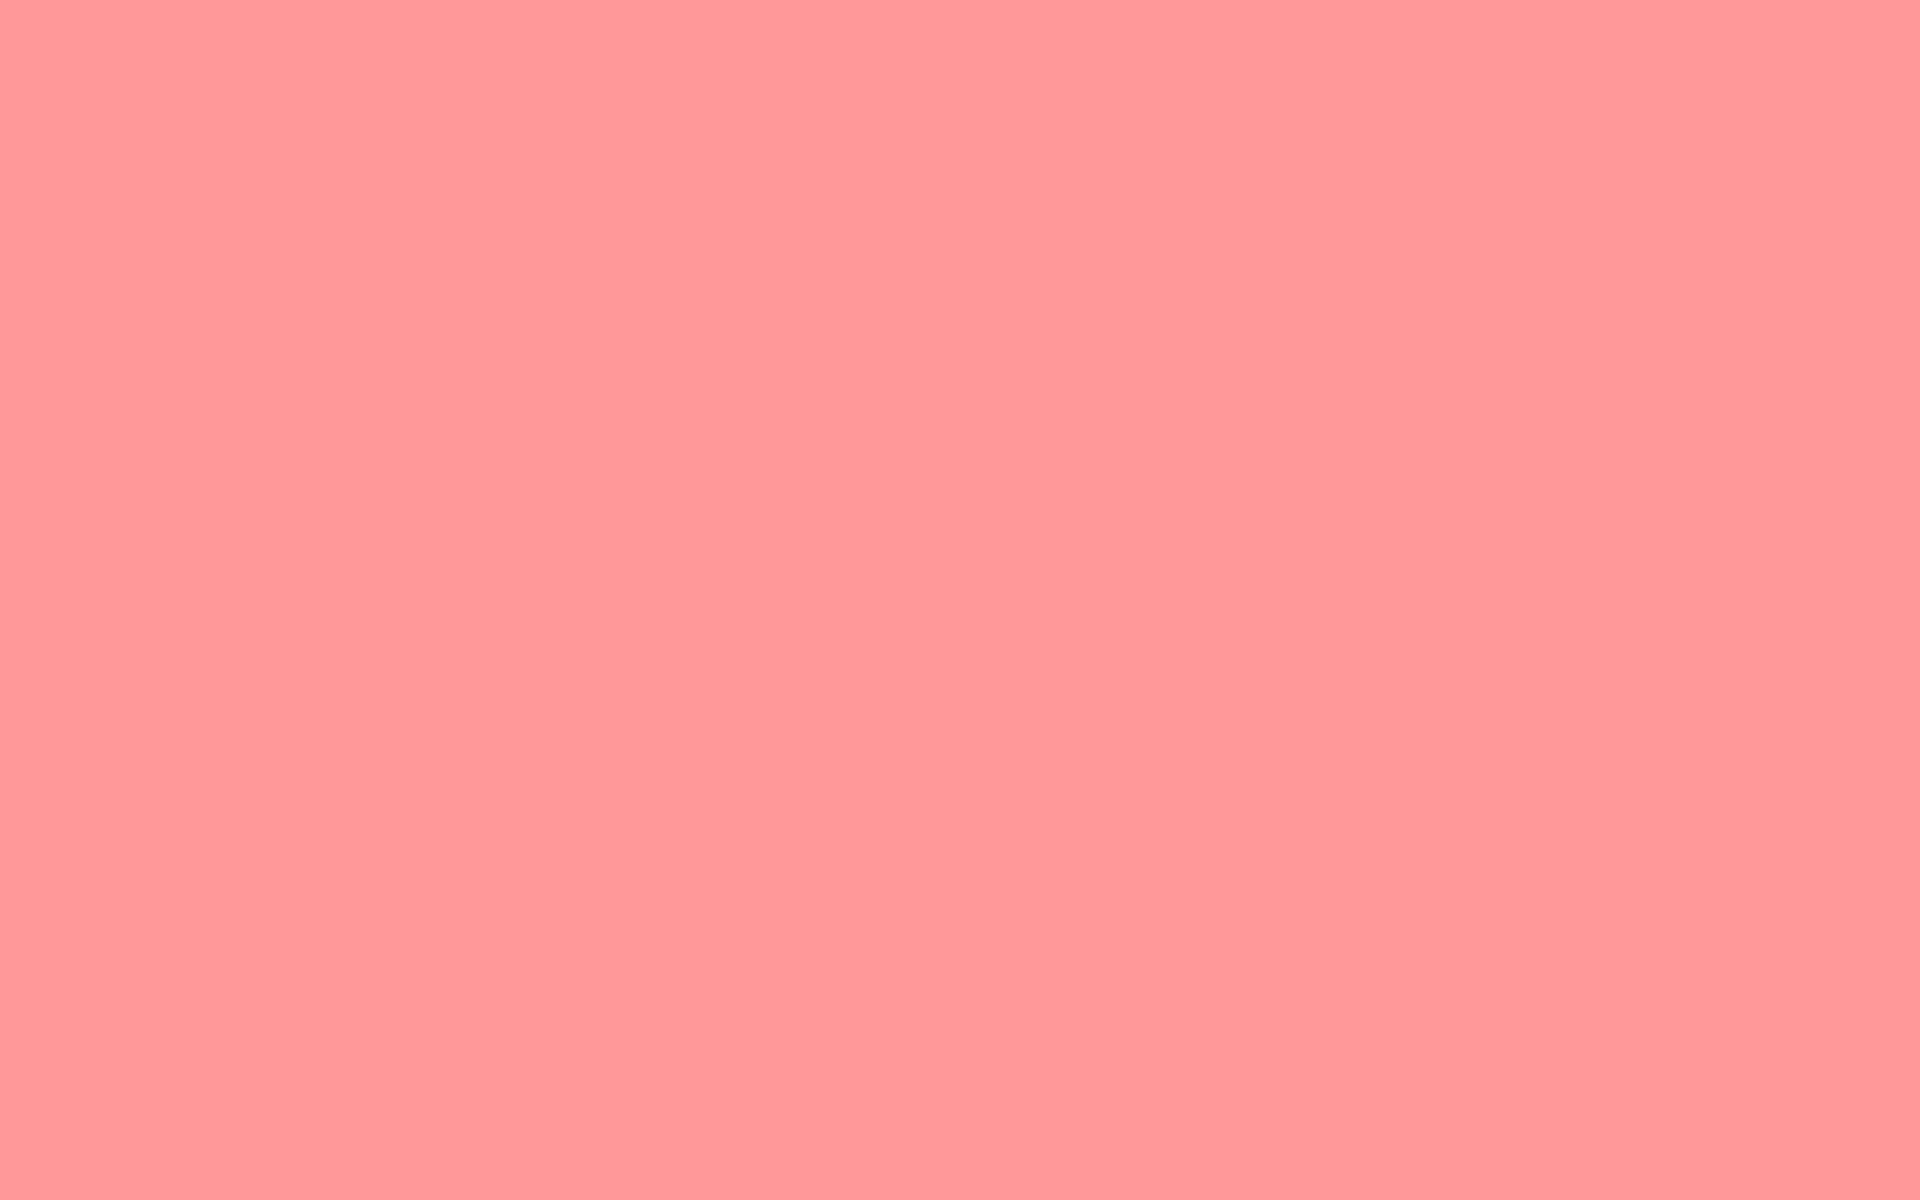 1920x1200 Light Salmon Pink Solid Color Background